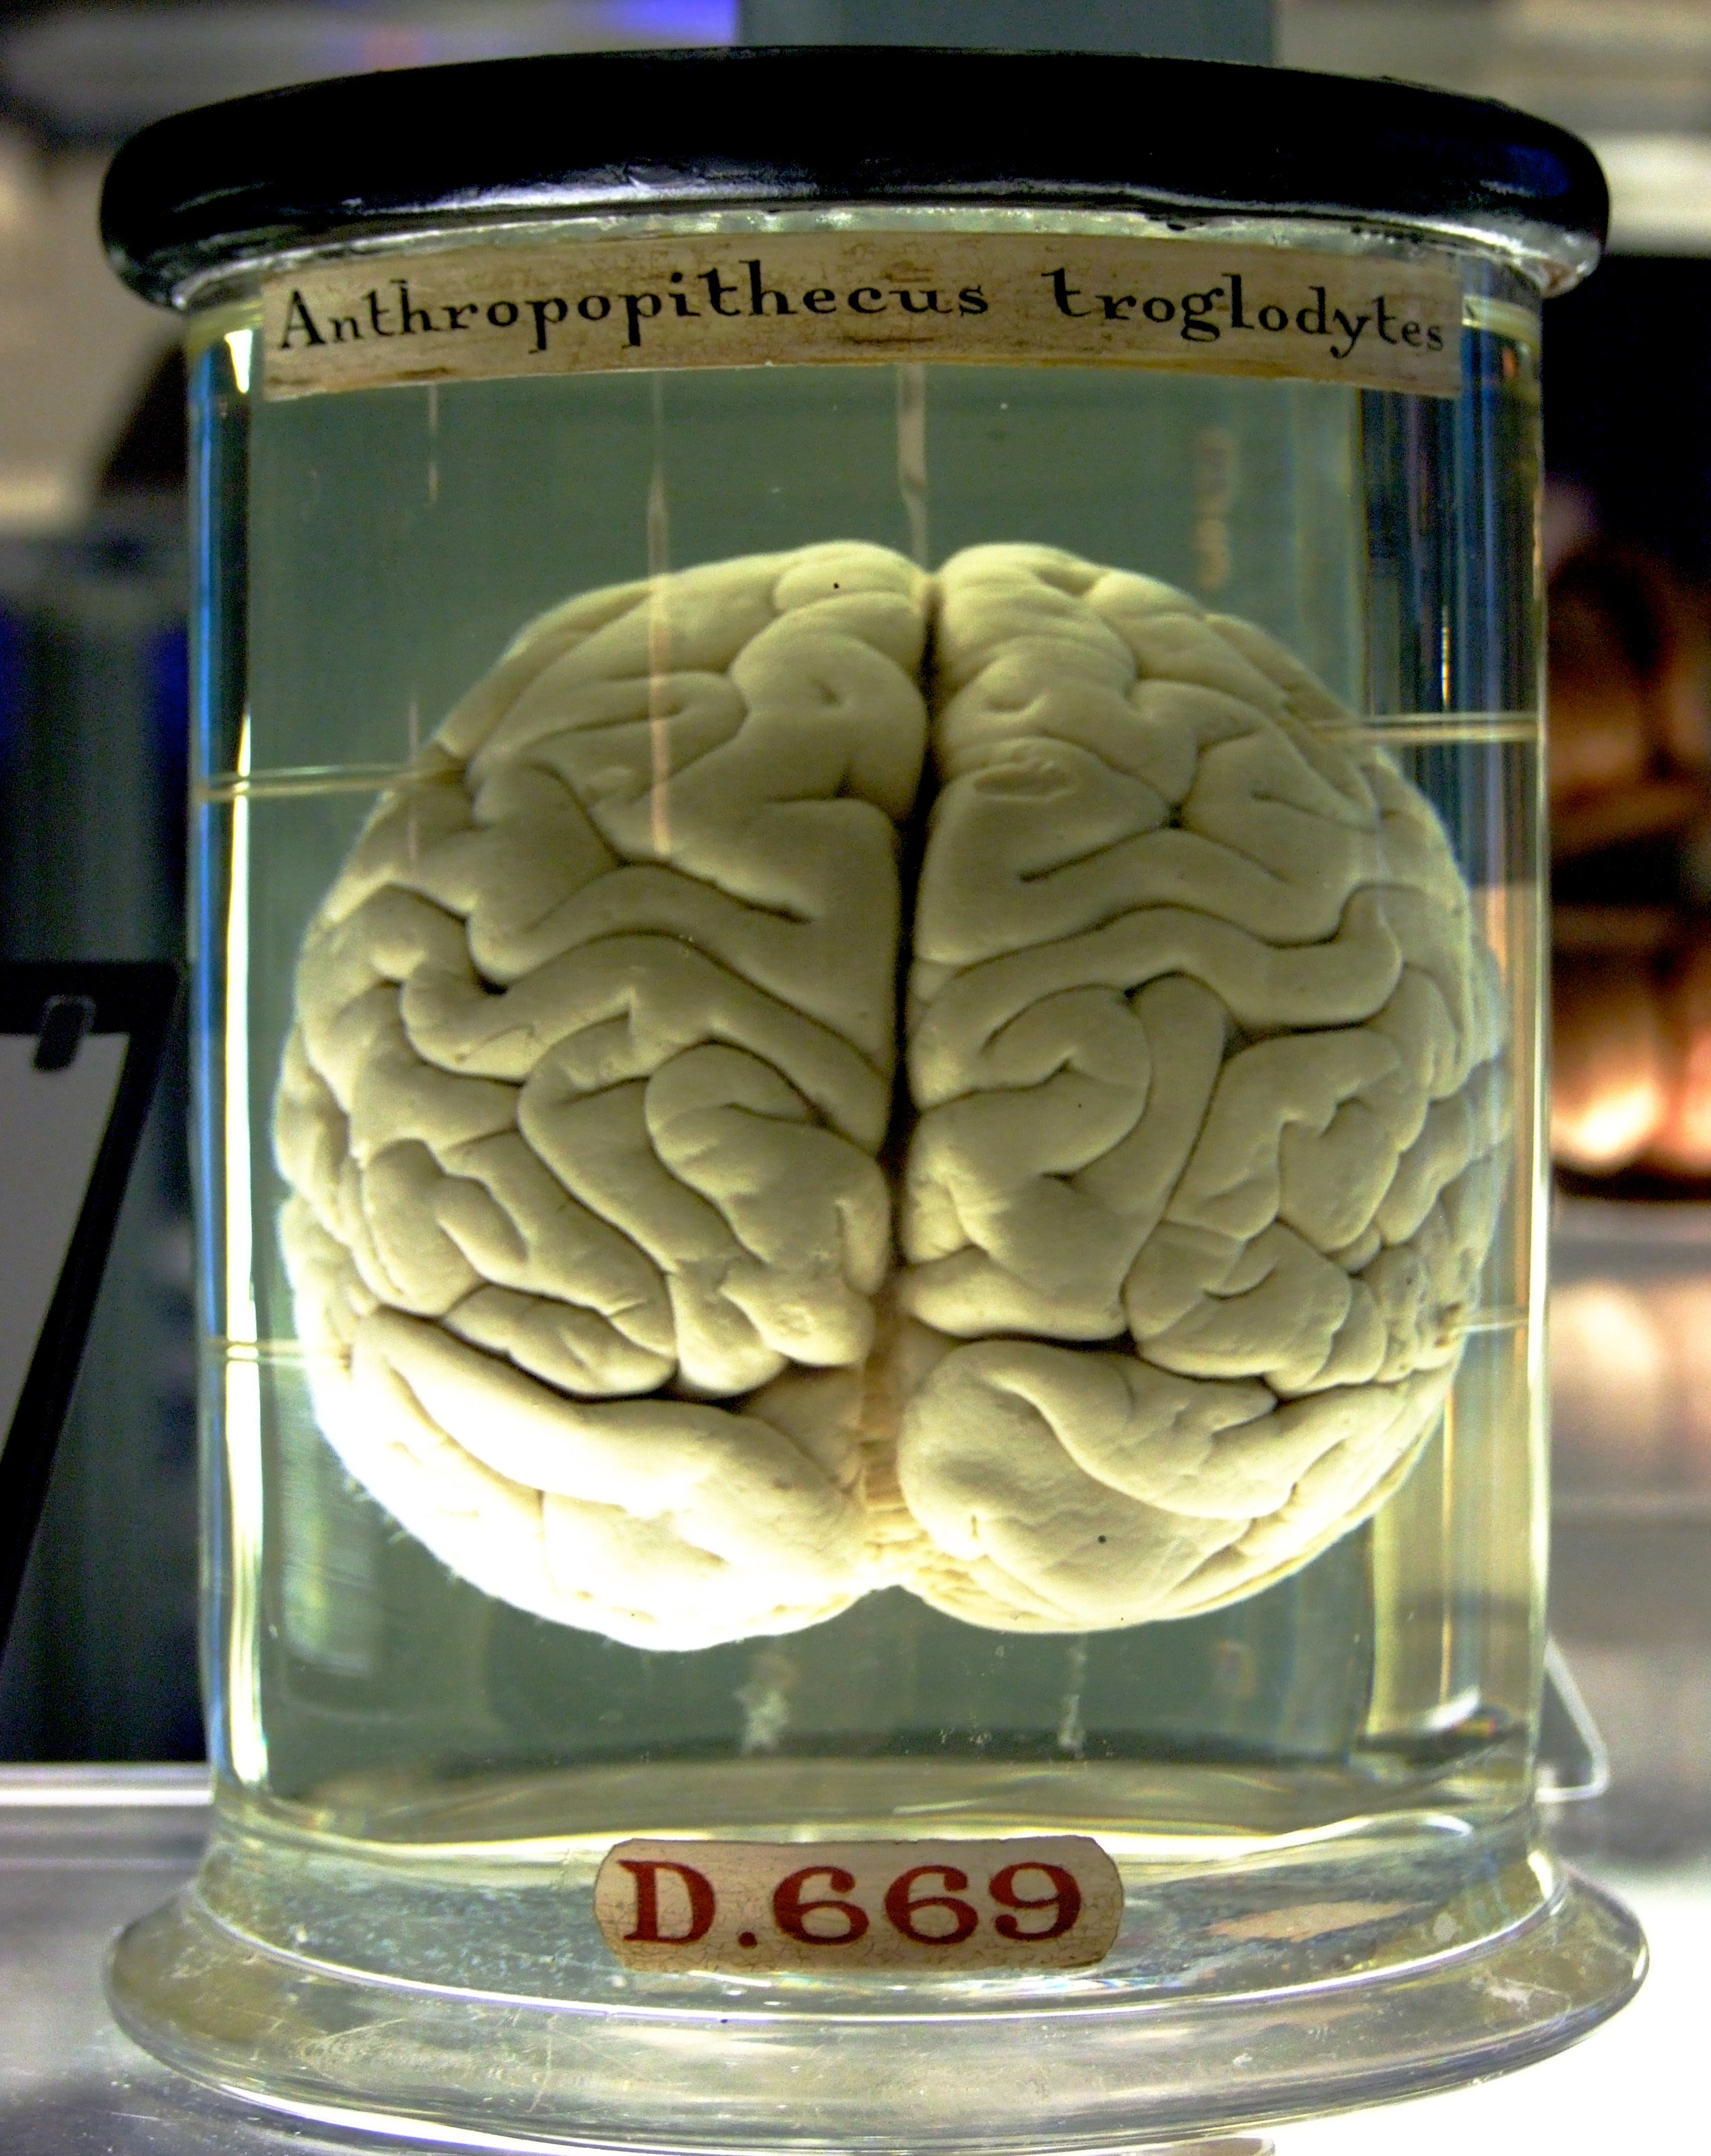 A chimpanzee brain preserved in a jar